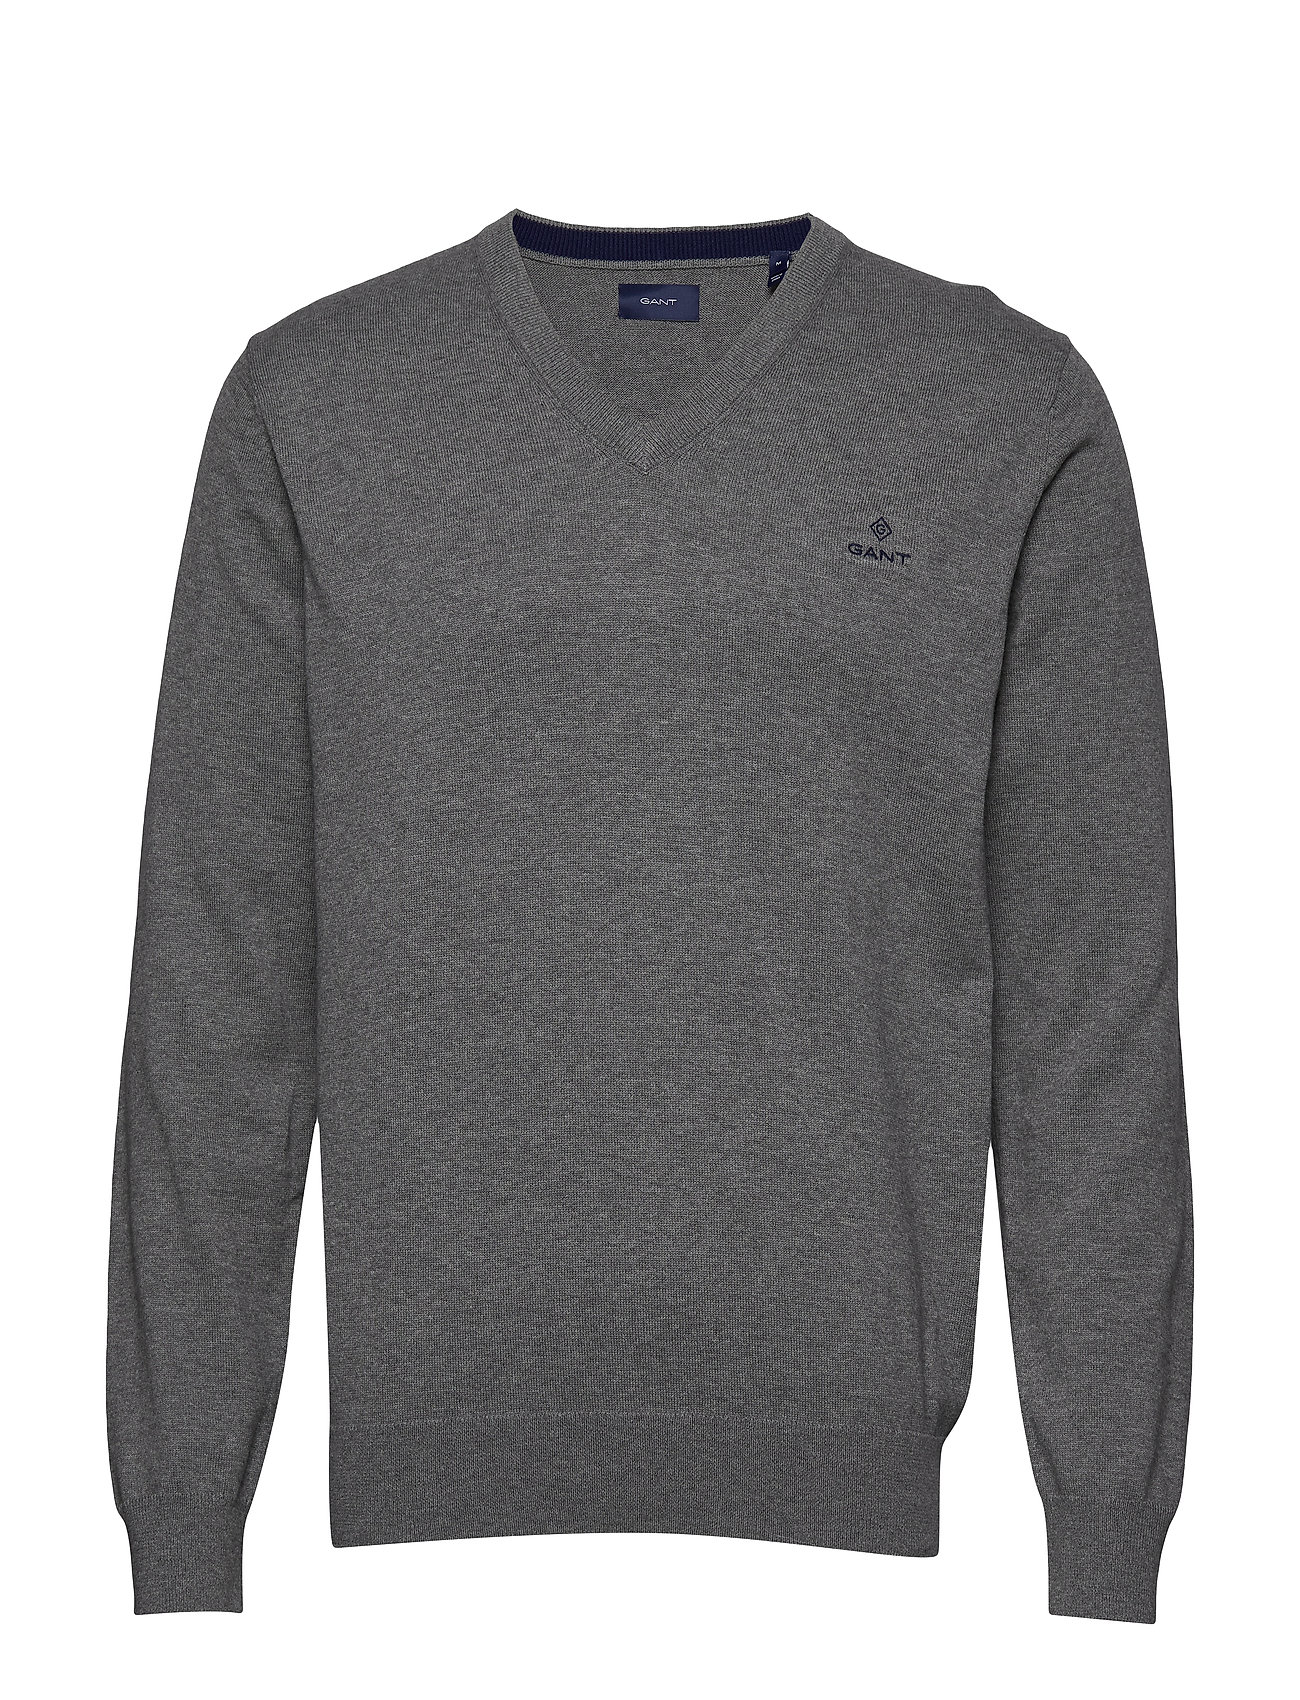 Gant CLASSIC COTTON V-NECK - DARK GREY MELANGE